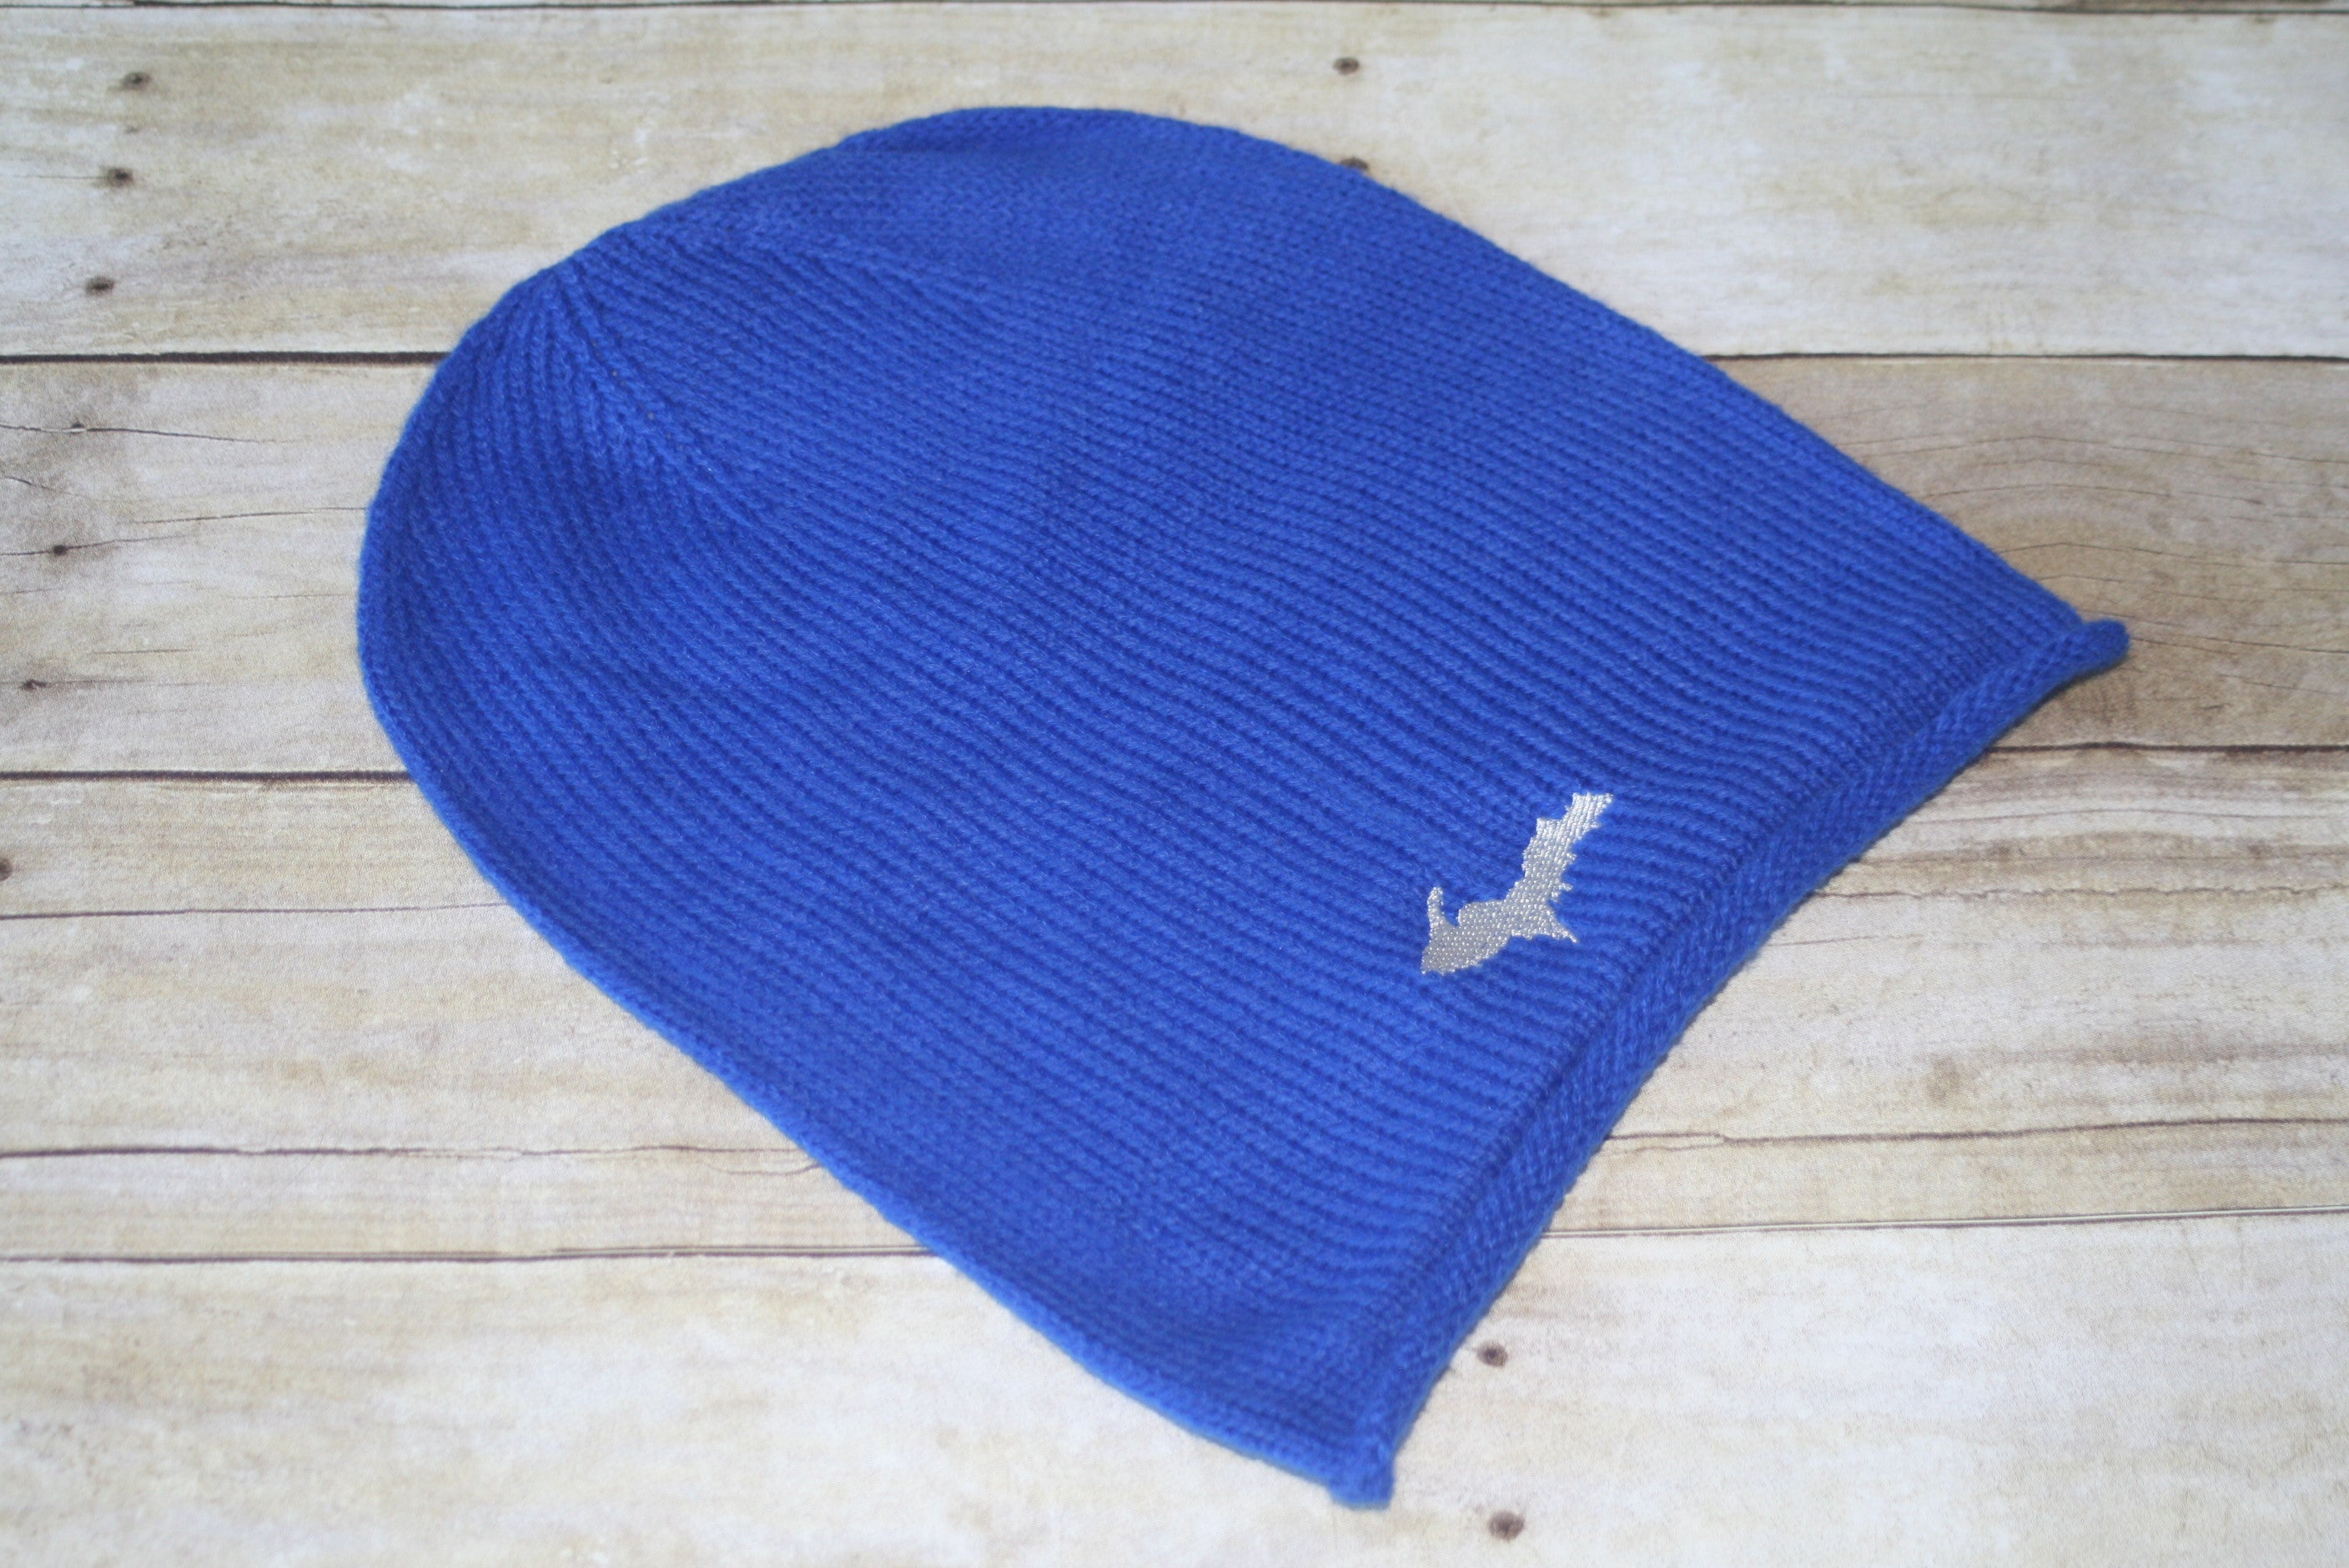 U.P. (Upper Peninsula) Embroidered Oversized Knit Beanie - Hat Adult OS